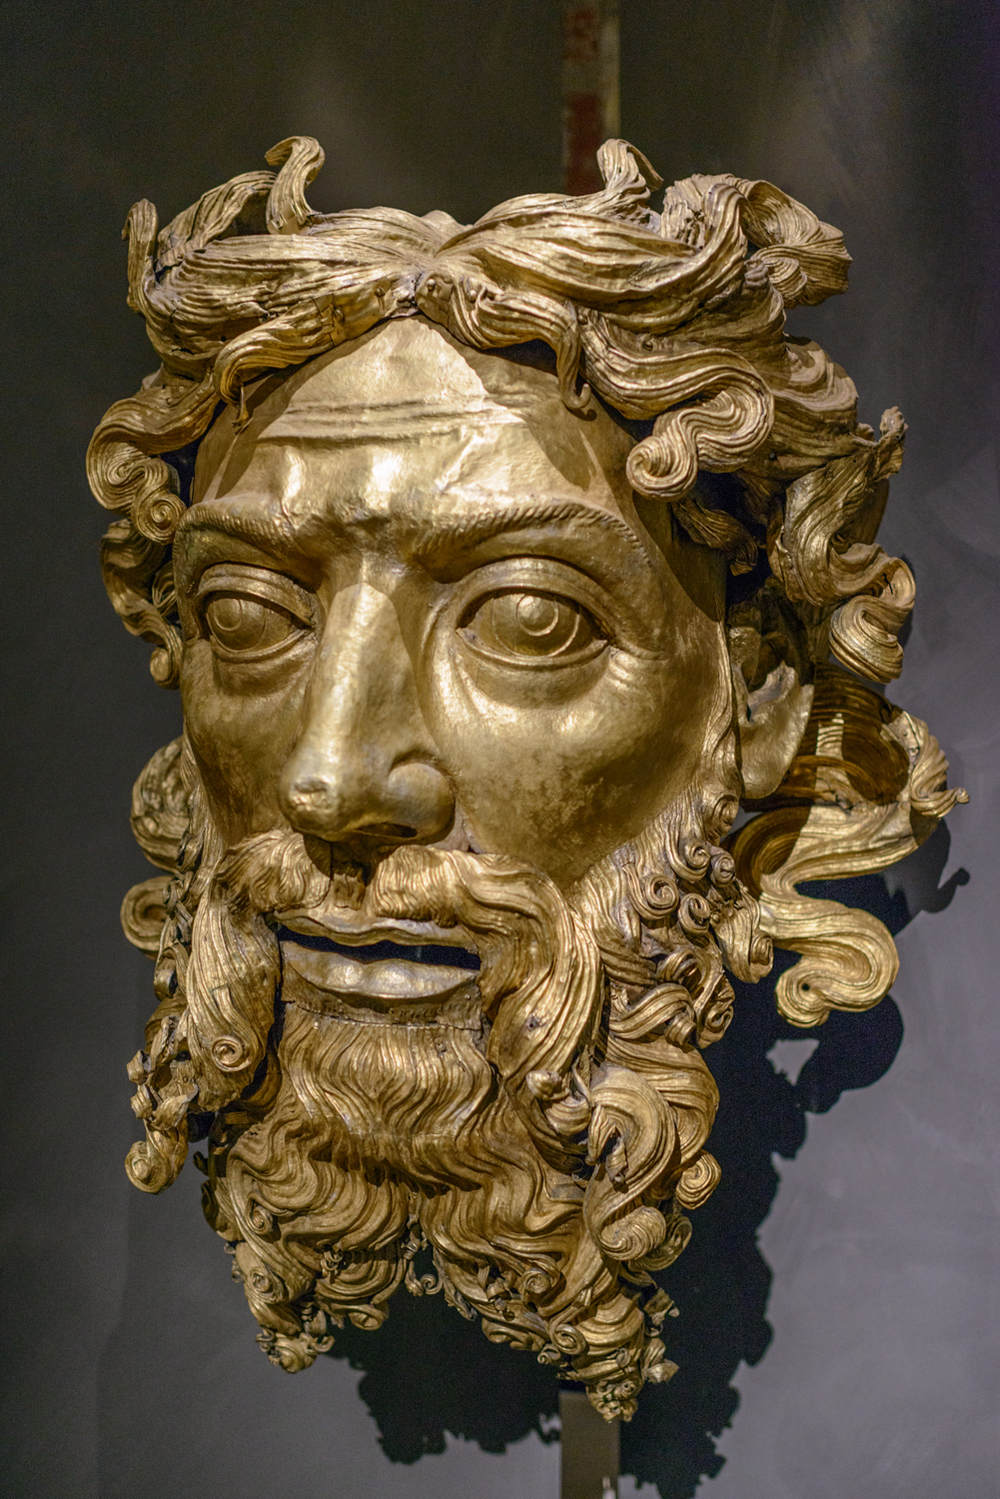 God the Father , Beltramino de Zutti, 1416-1425. Duomo di Milano, Museum.